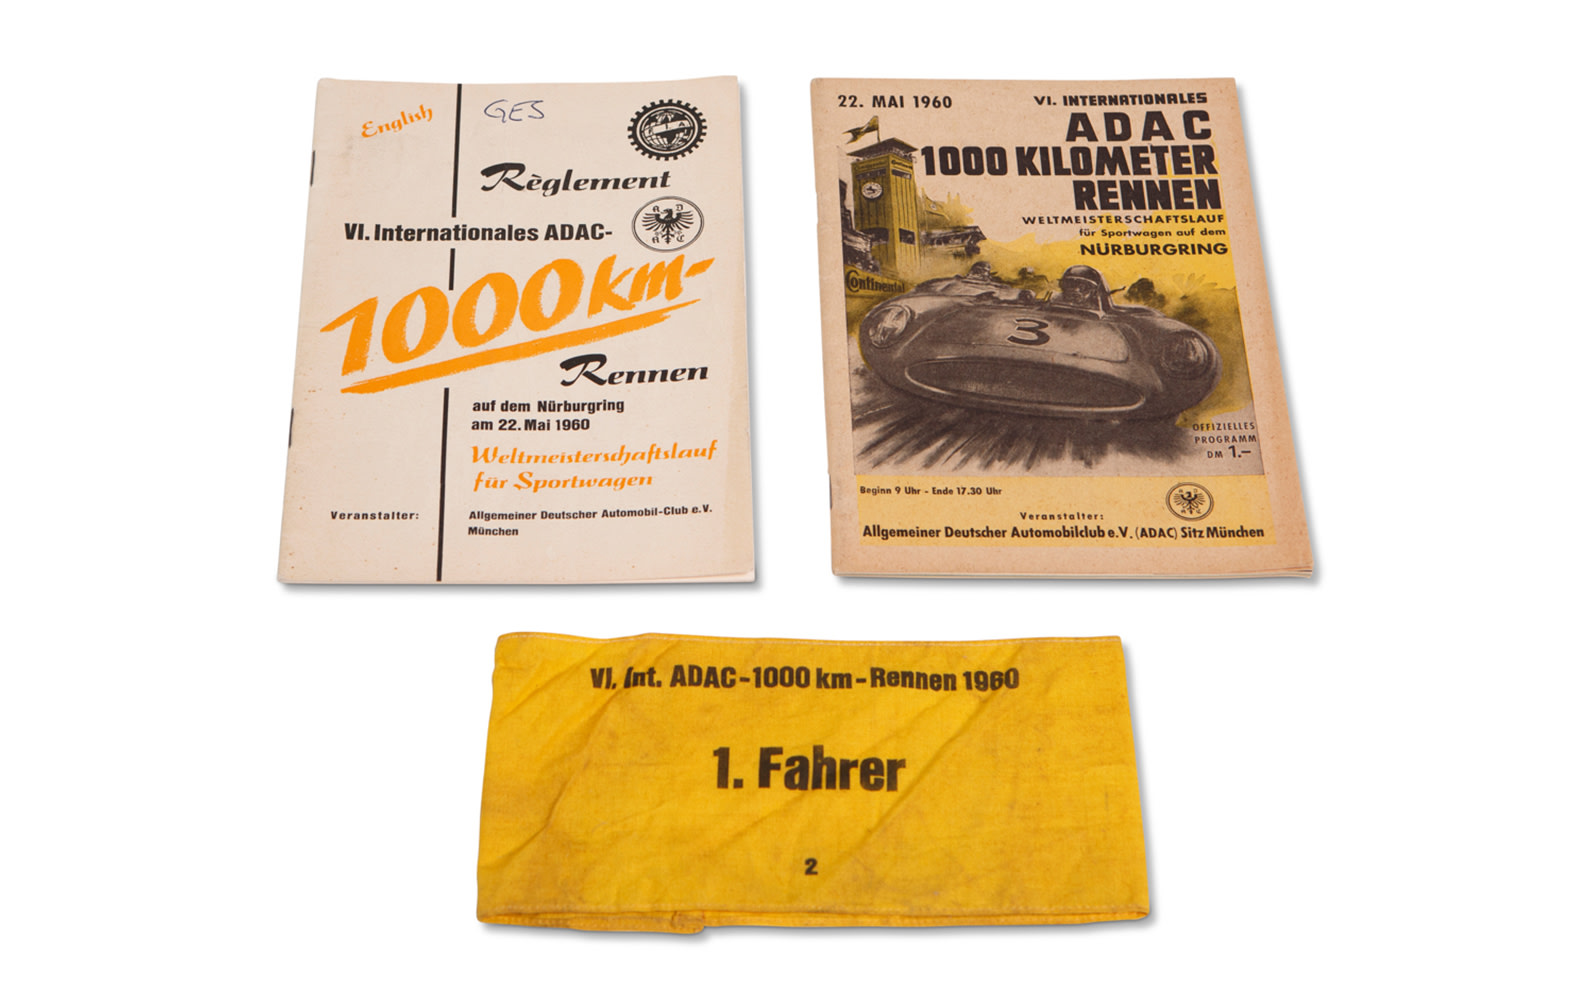 1960 ADAC 1000 Km Nürburgring Official Race Program, Regulations Book, and Armband